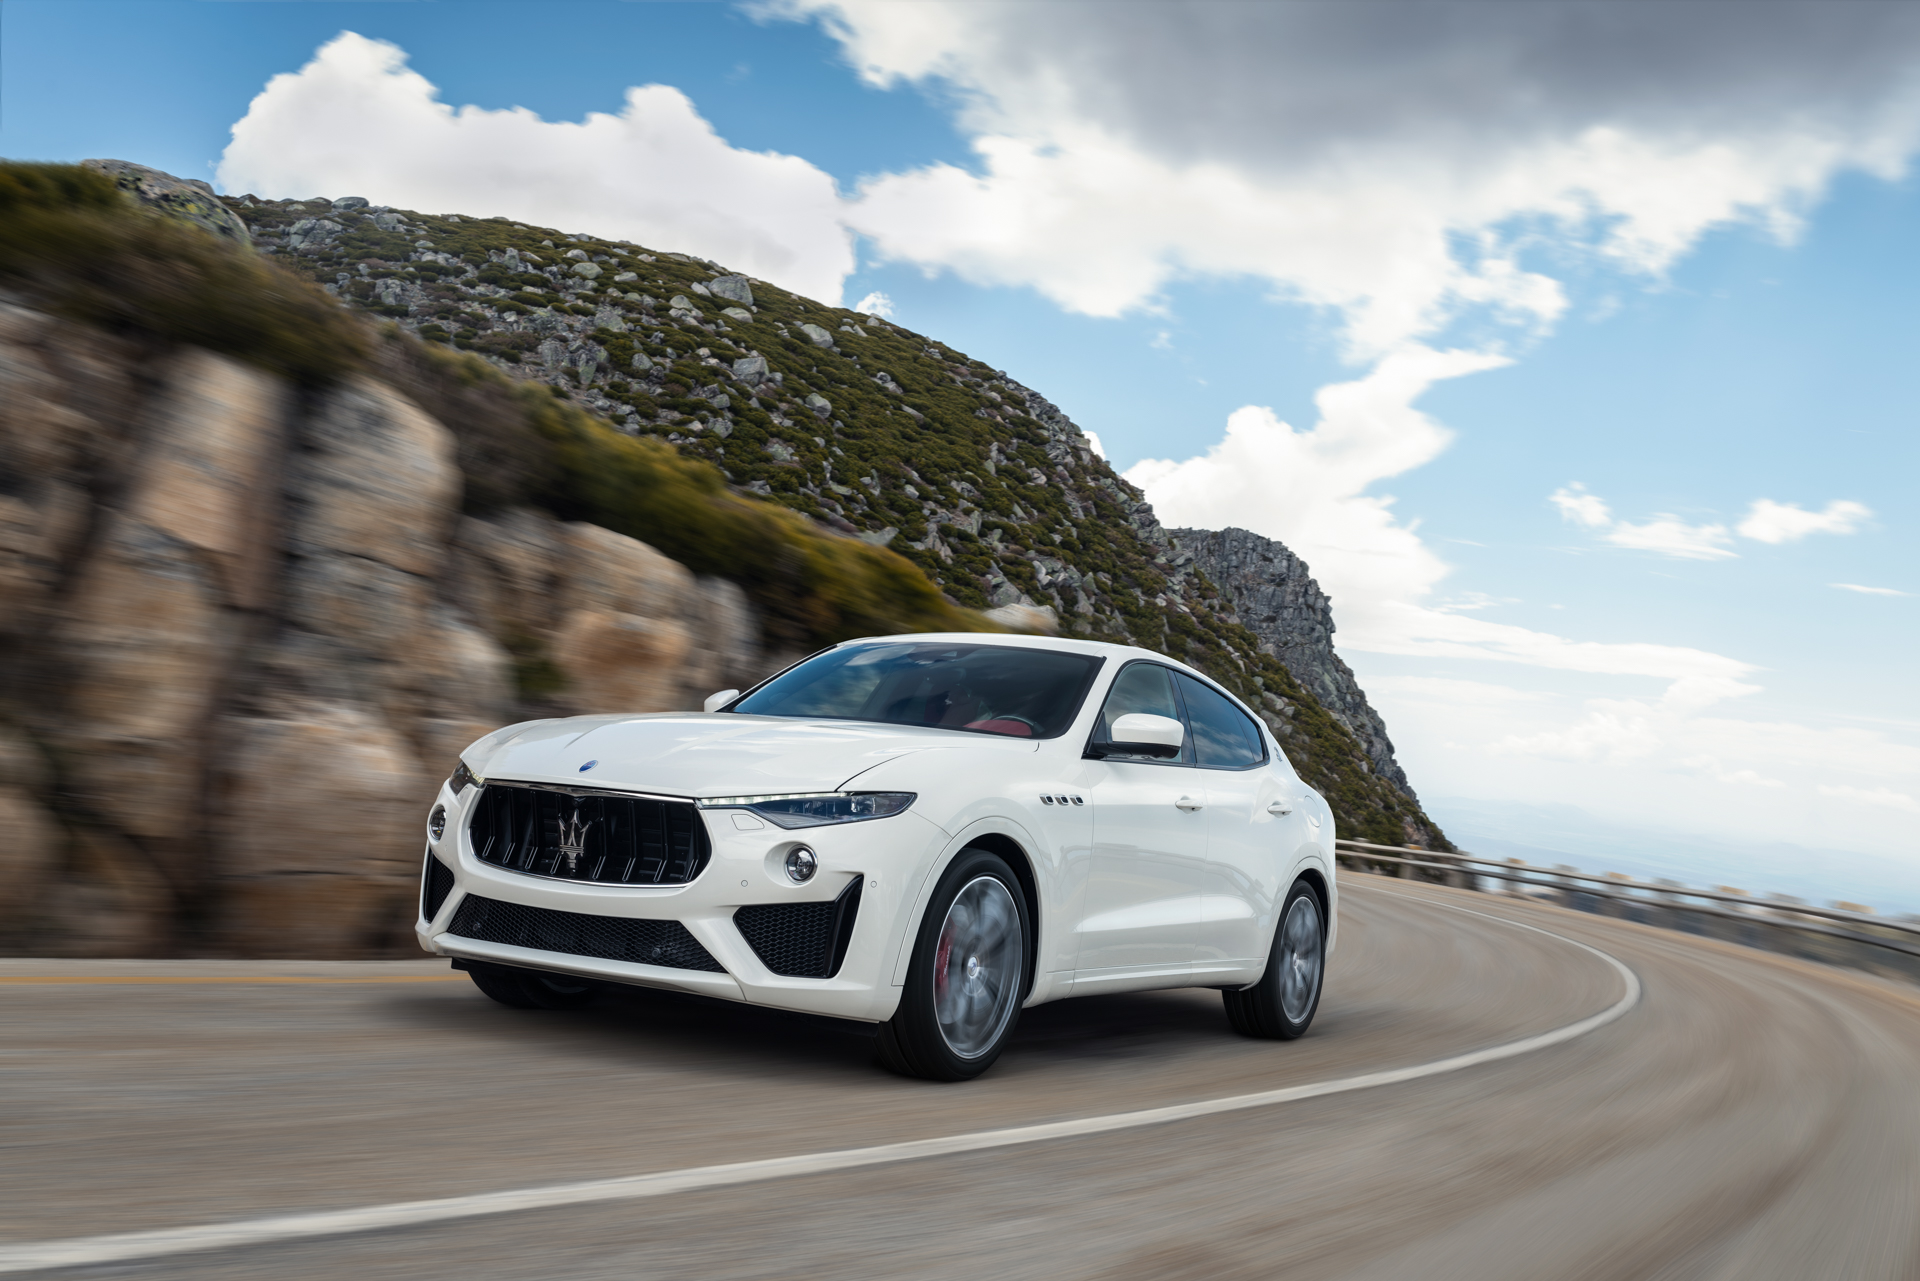 A First Look at the 2019 Maserati Levante